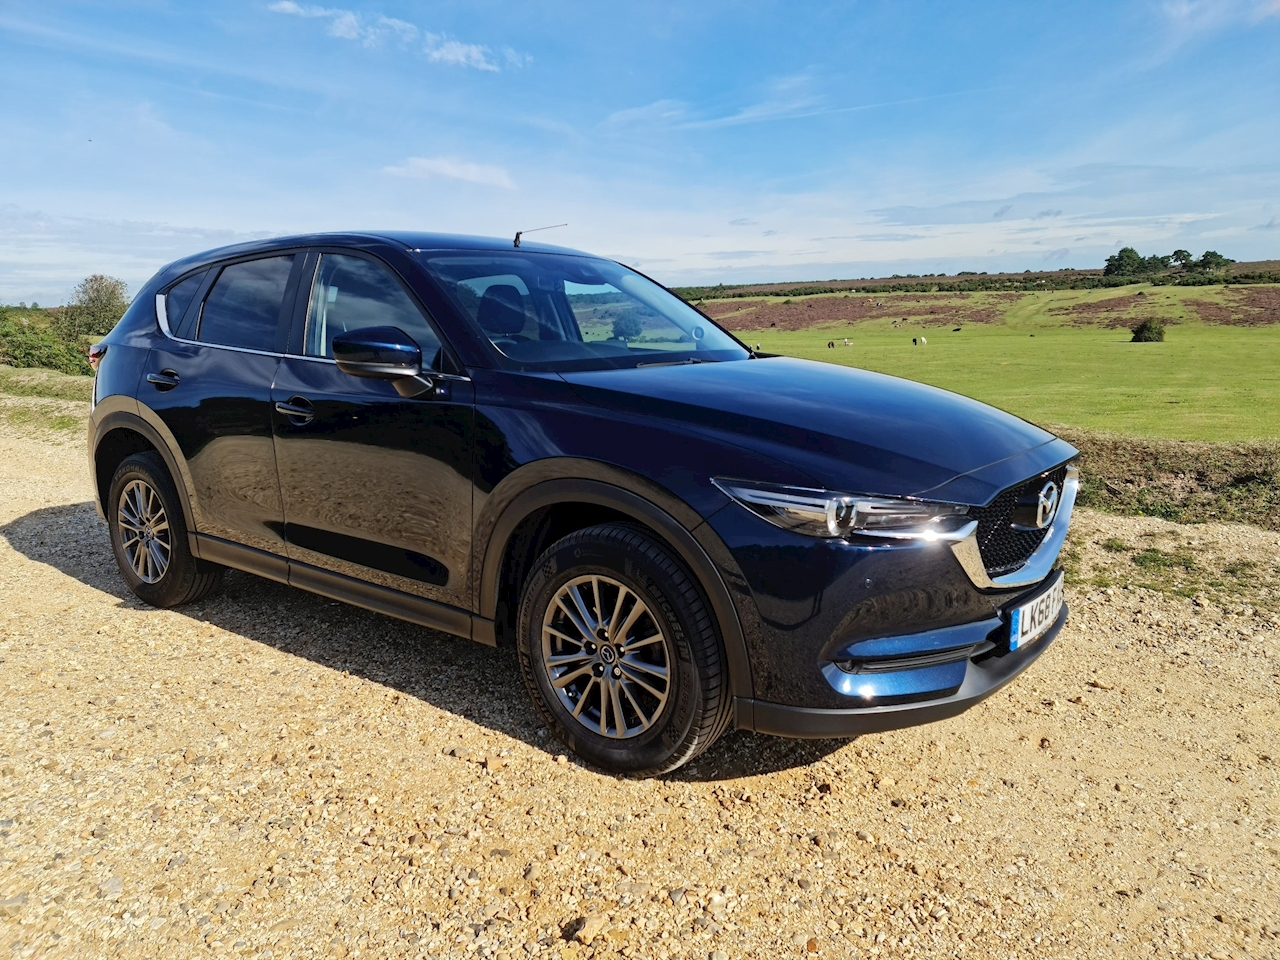 Mazda Cx-5 D Se-L Nav Estate 2.2 Manual Diesel